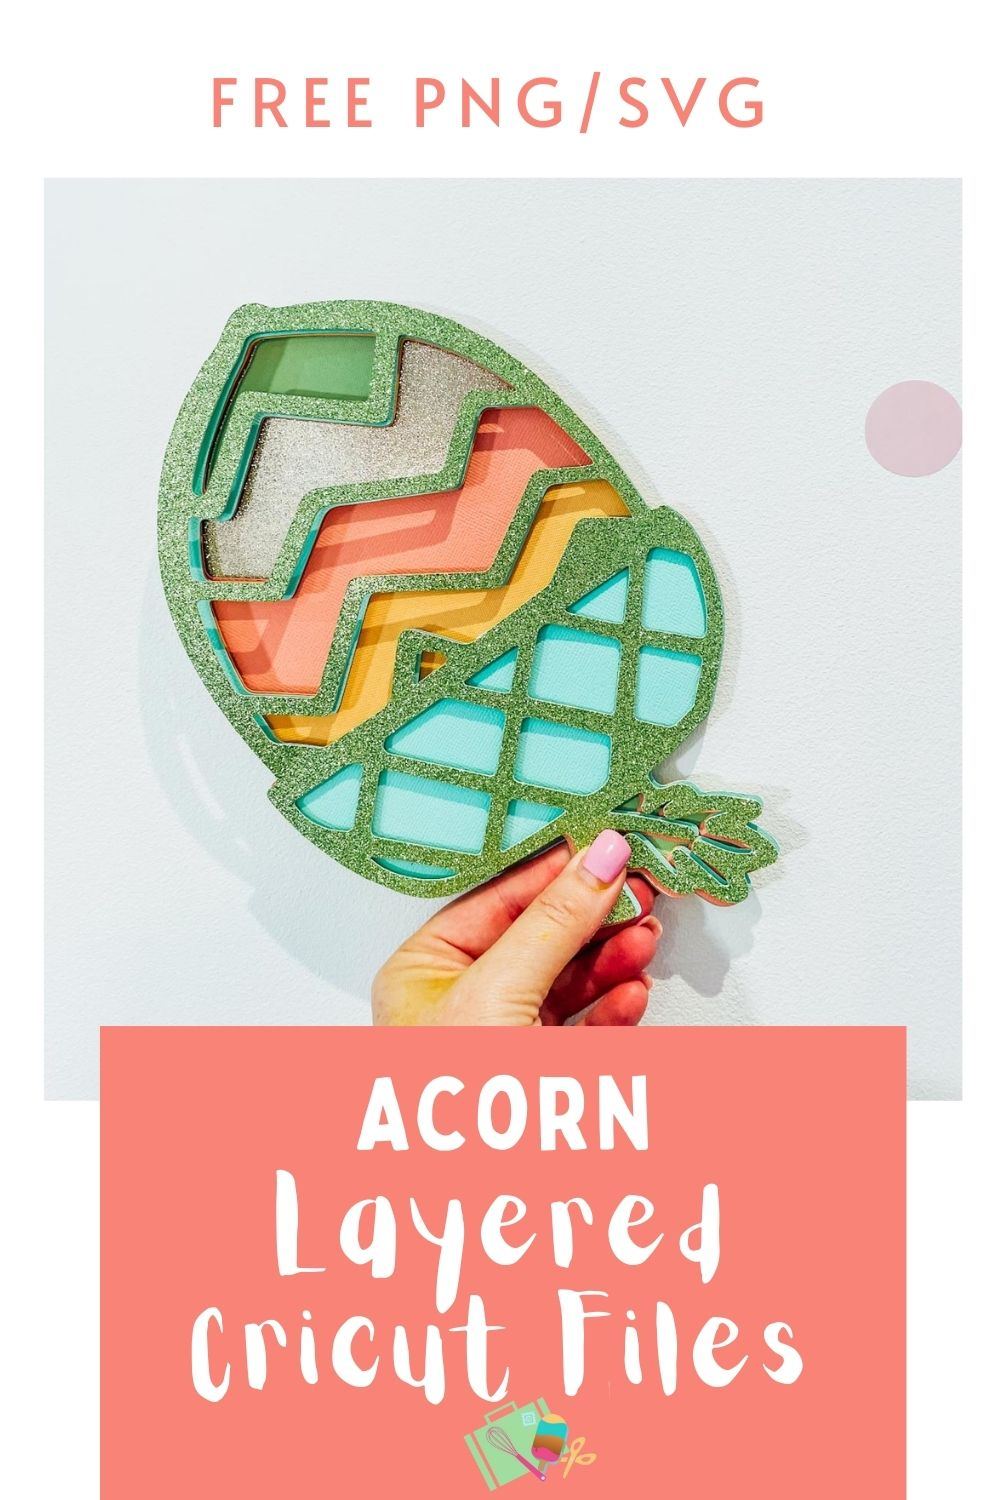 Free PNG SVG Acorn for Cricut Crafting-2